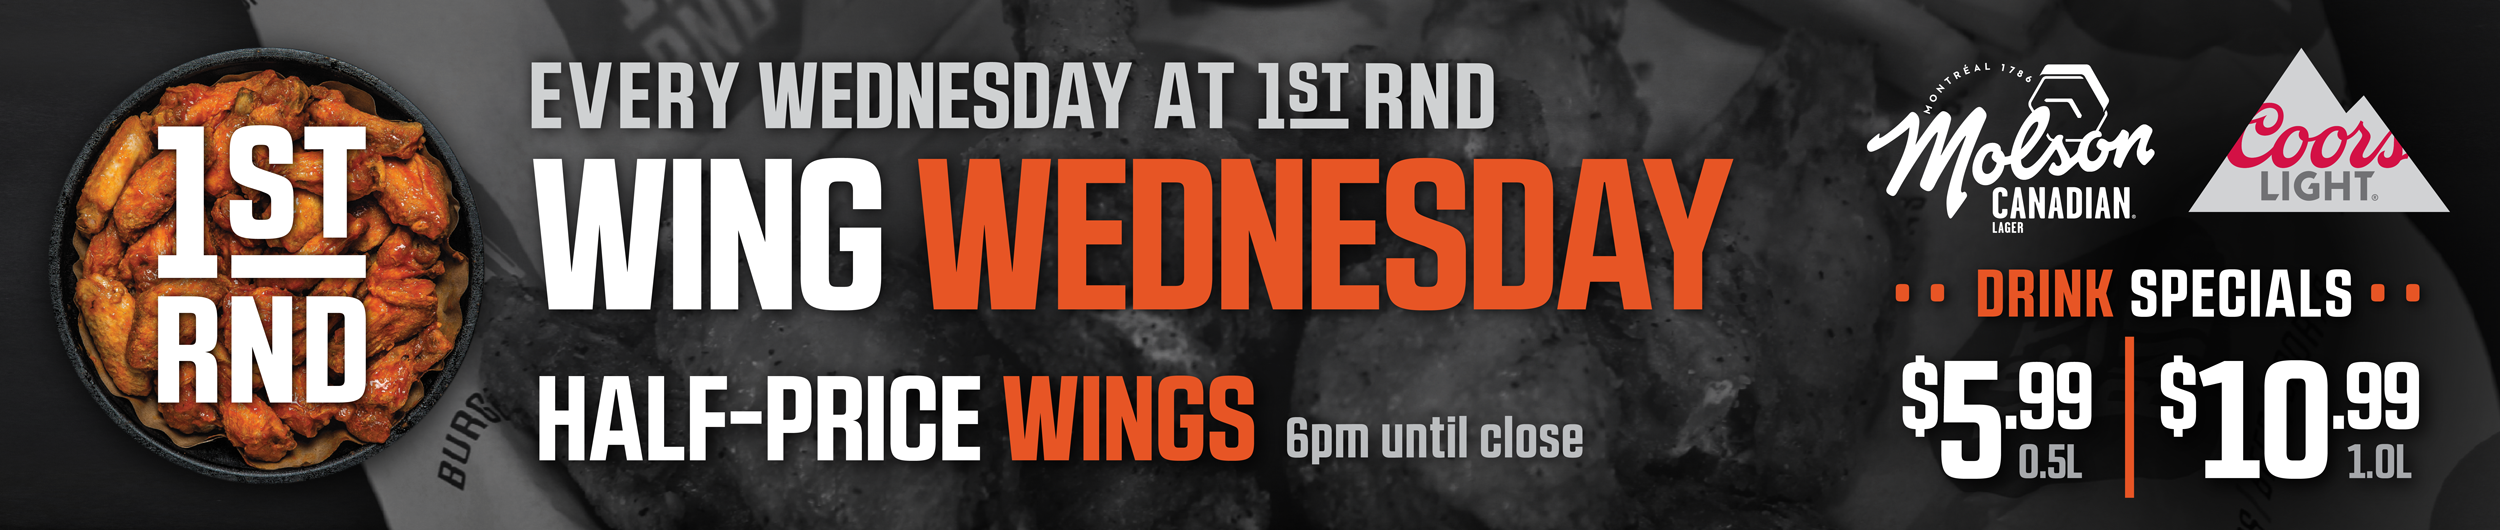 wing-wednesday-background